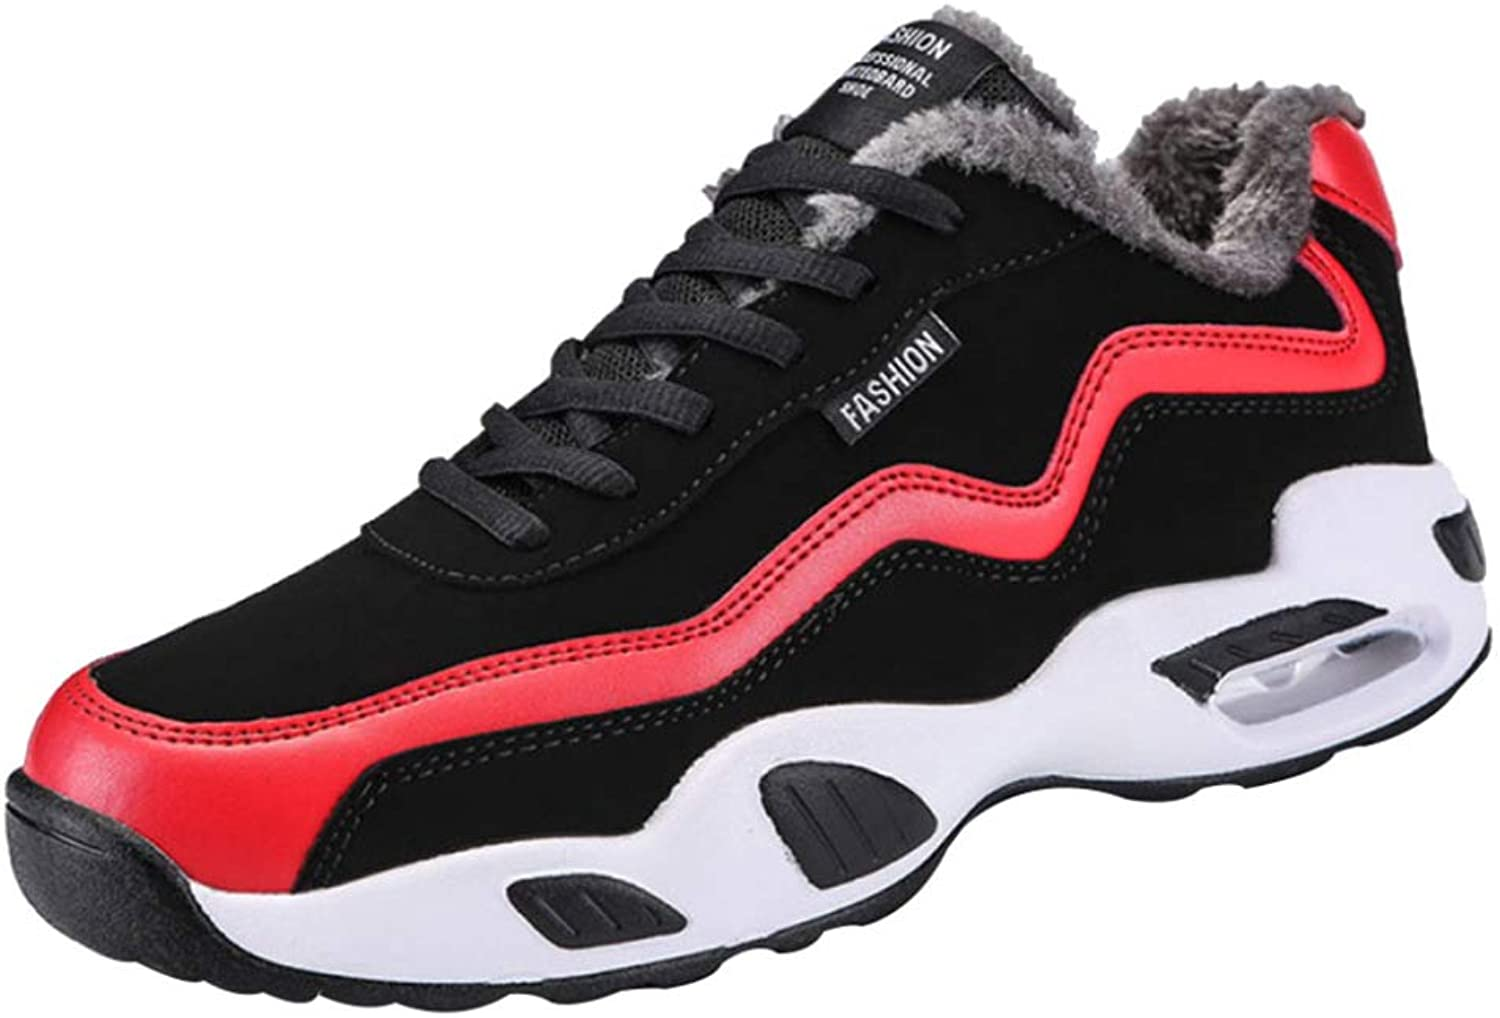 MISS LI Sports shoes Winter High Basketball shoes Men Plus Velvet Warm Non-Slip Wear Casual Student Air Cushion Running shoes